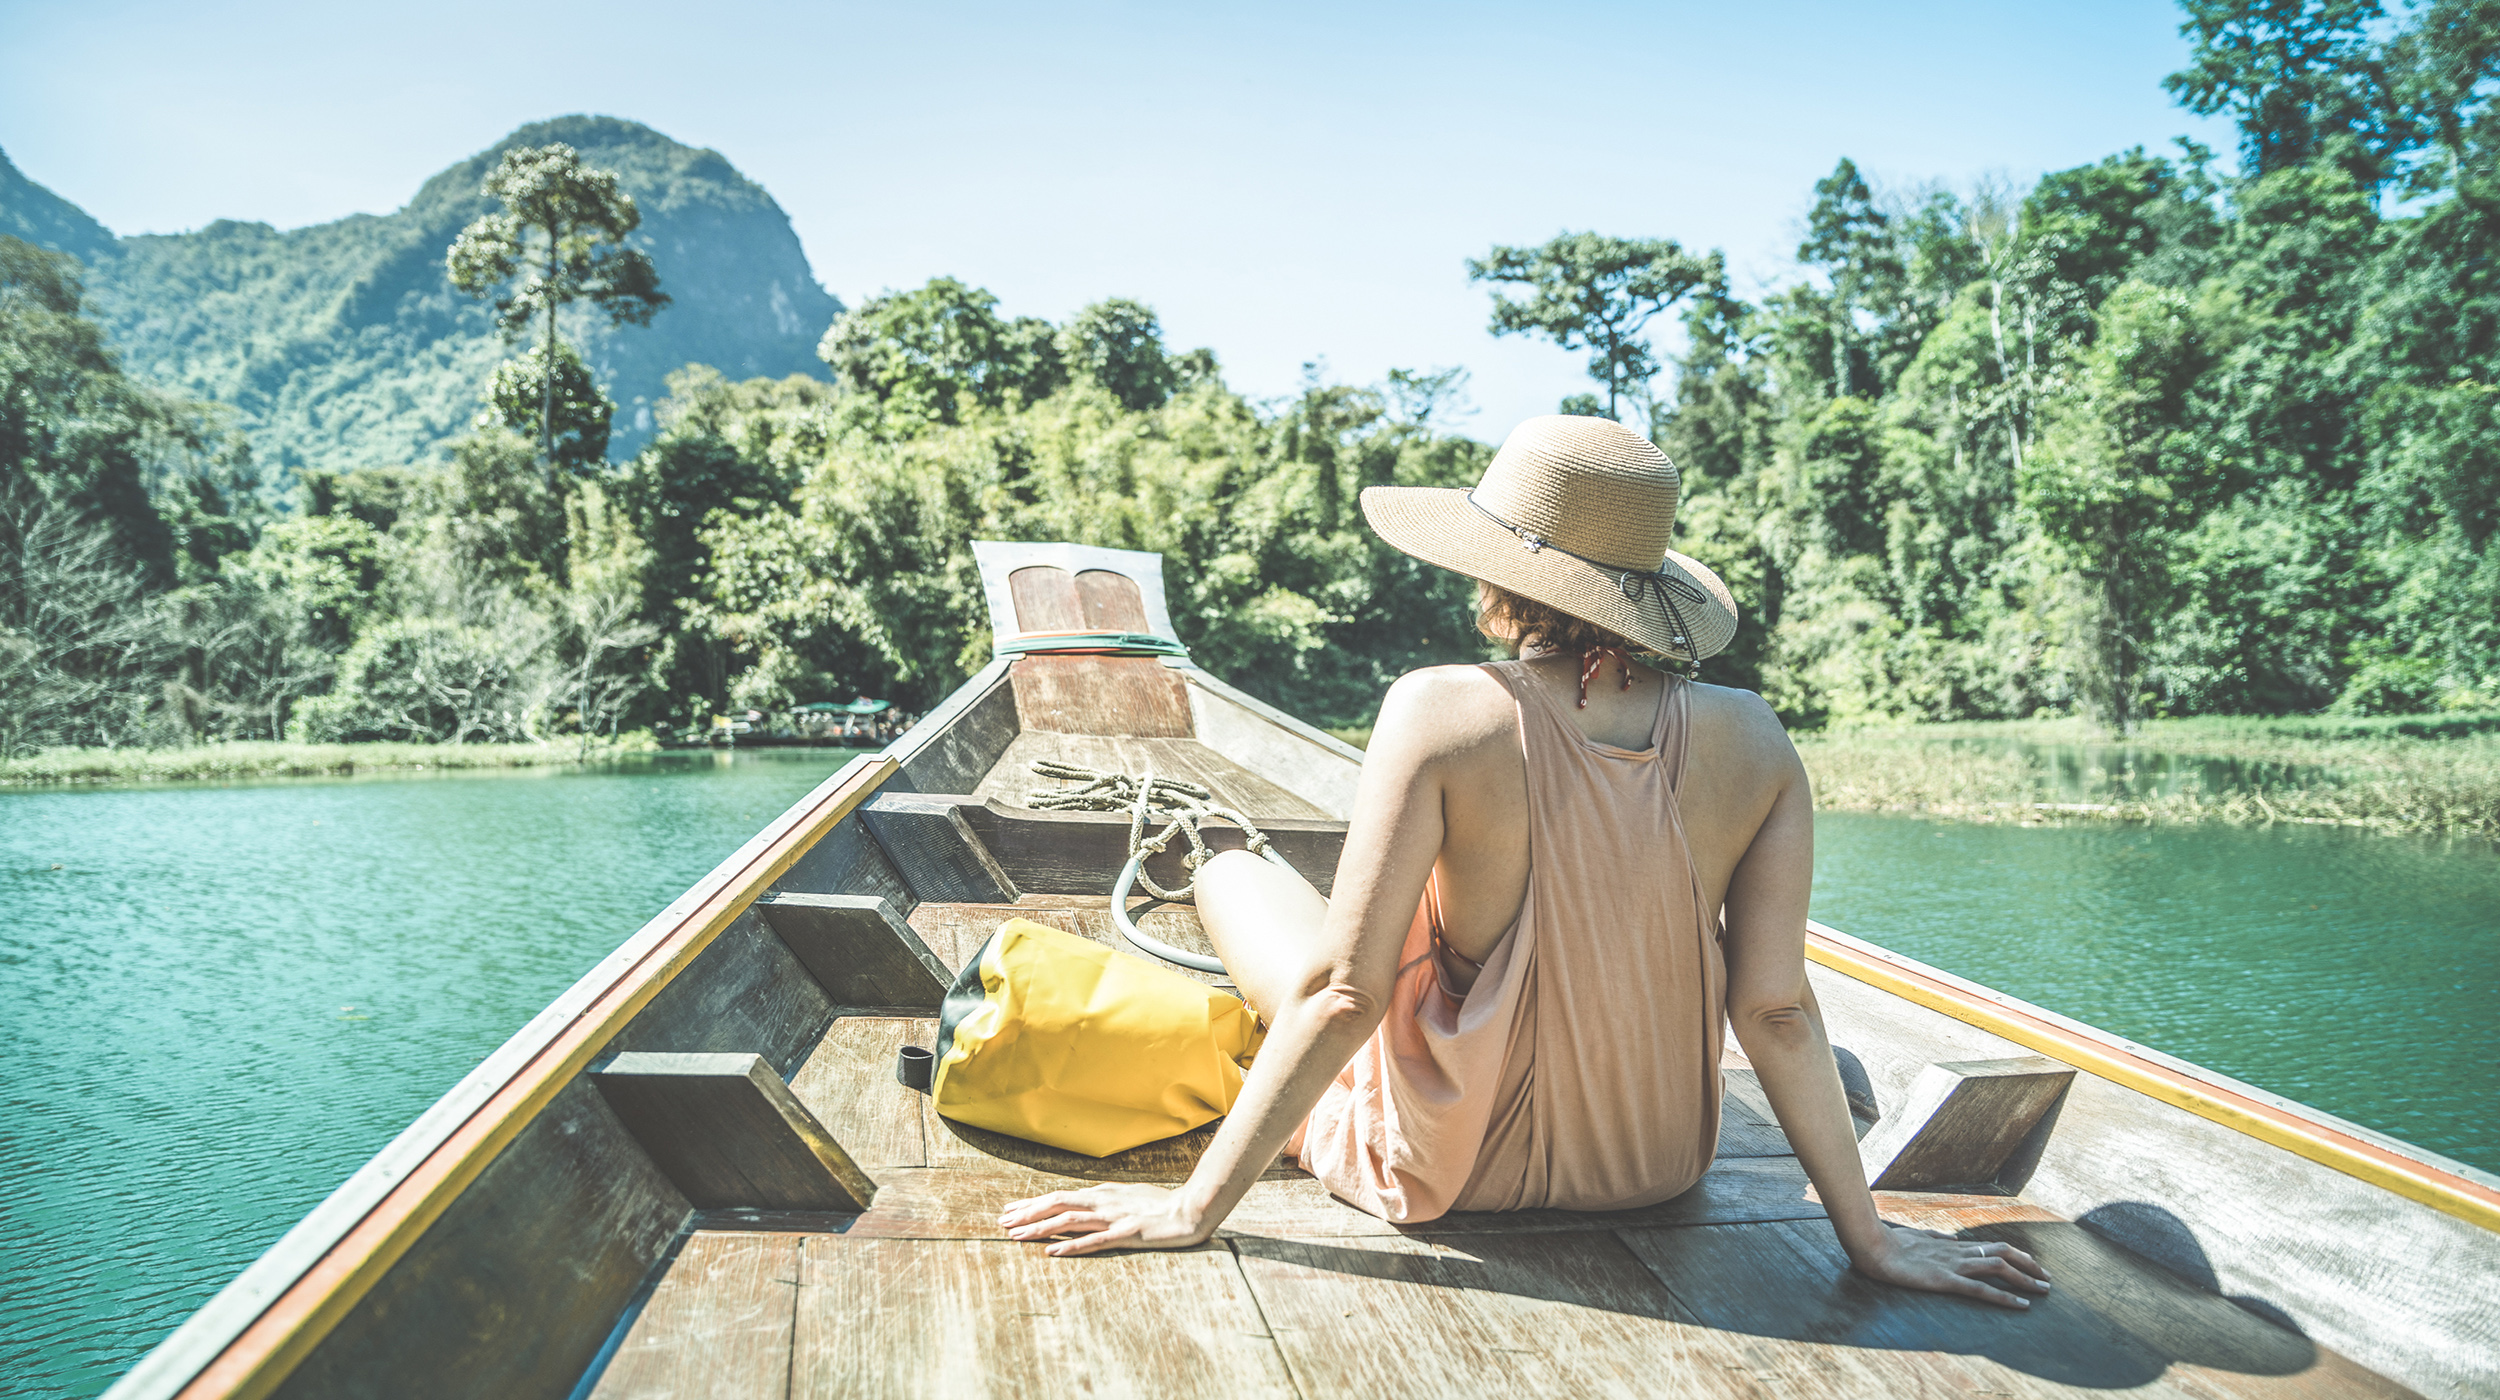 girl alone on boat